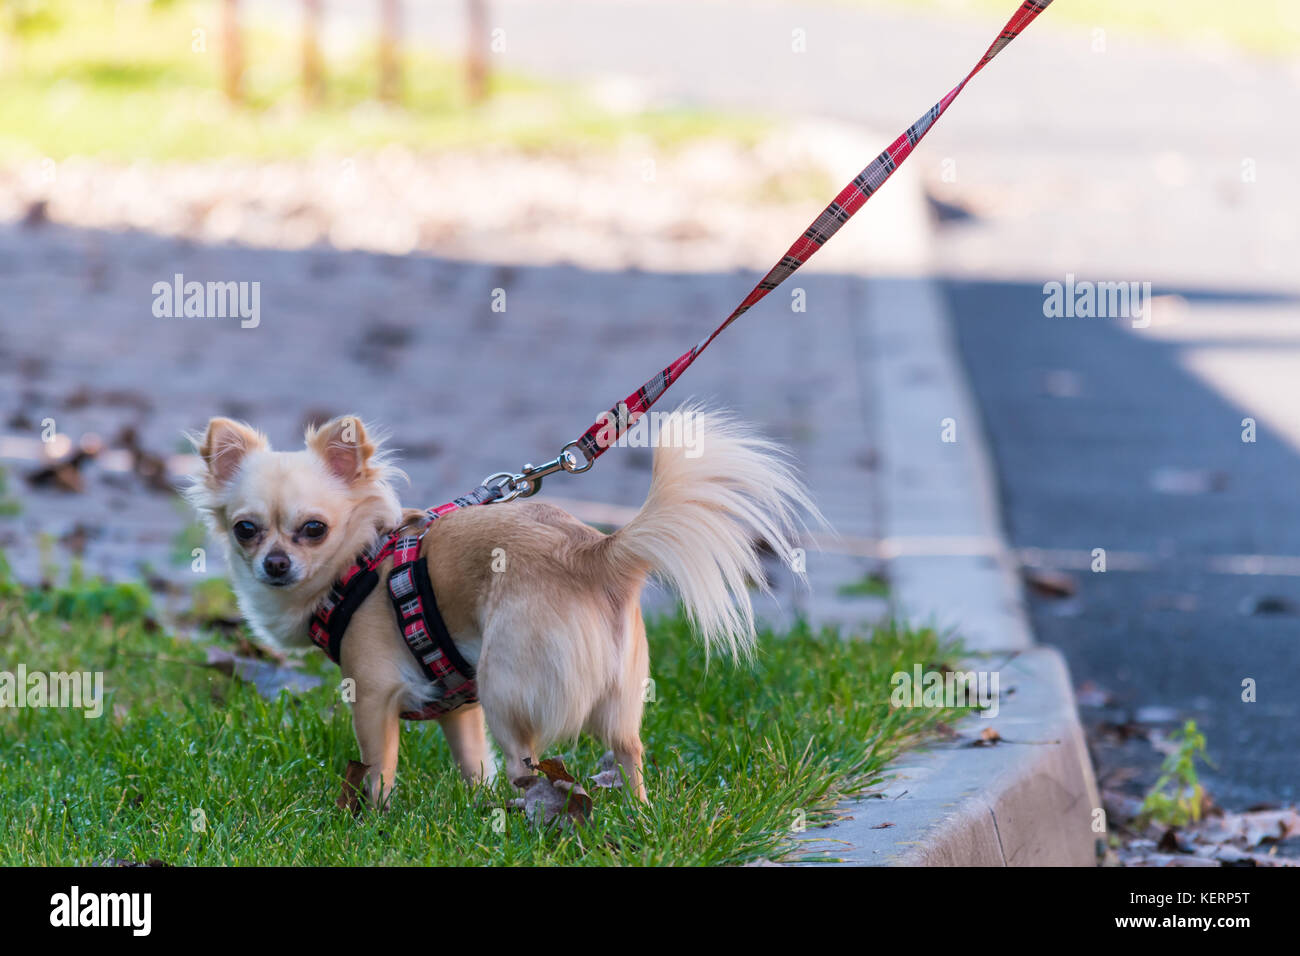 Chihuahua On Lead Stock Photos & Chihuahua On Lead Stock Images ...